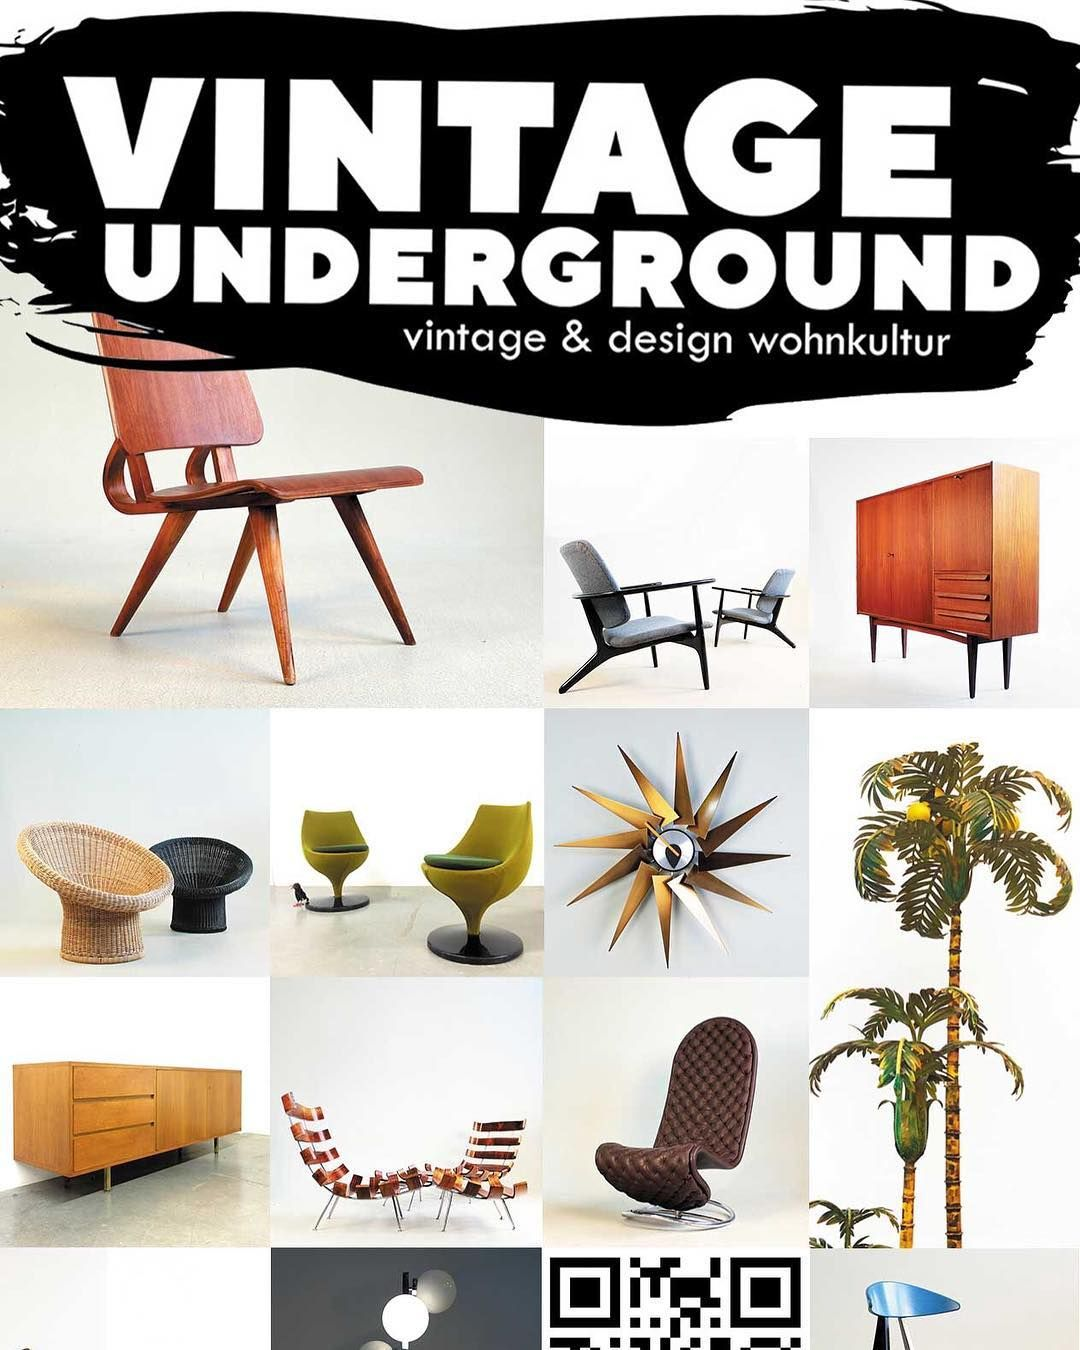 Design Möbel Köln coming soon vintage the showroom in cologne for vintage